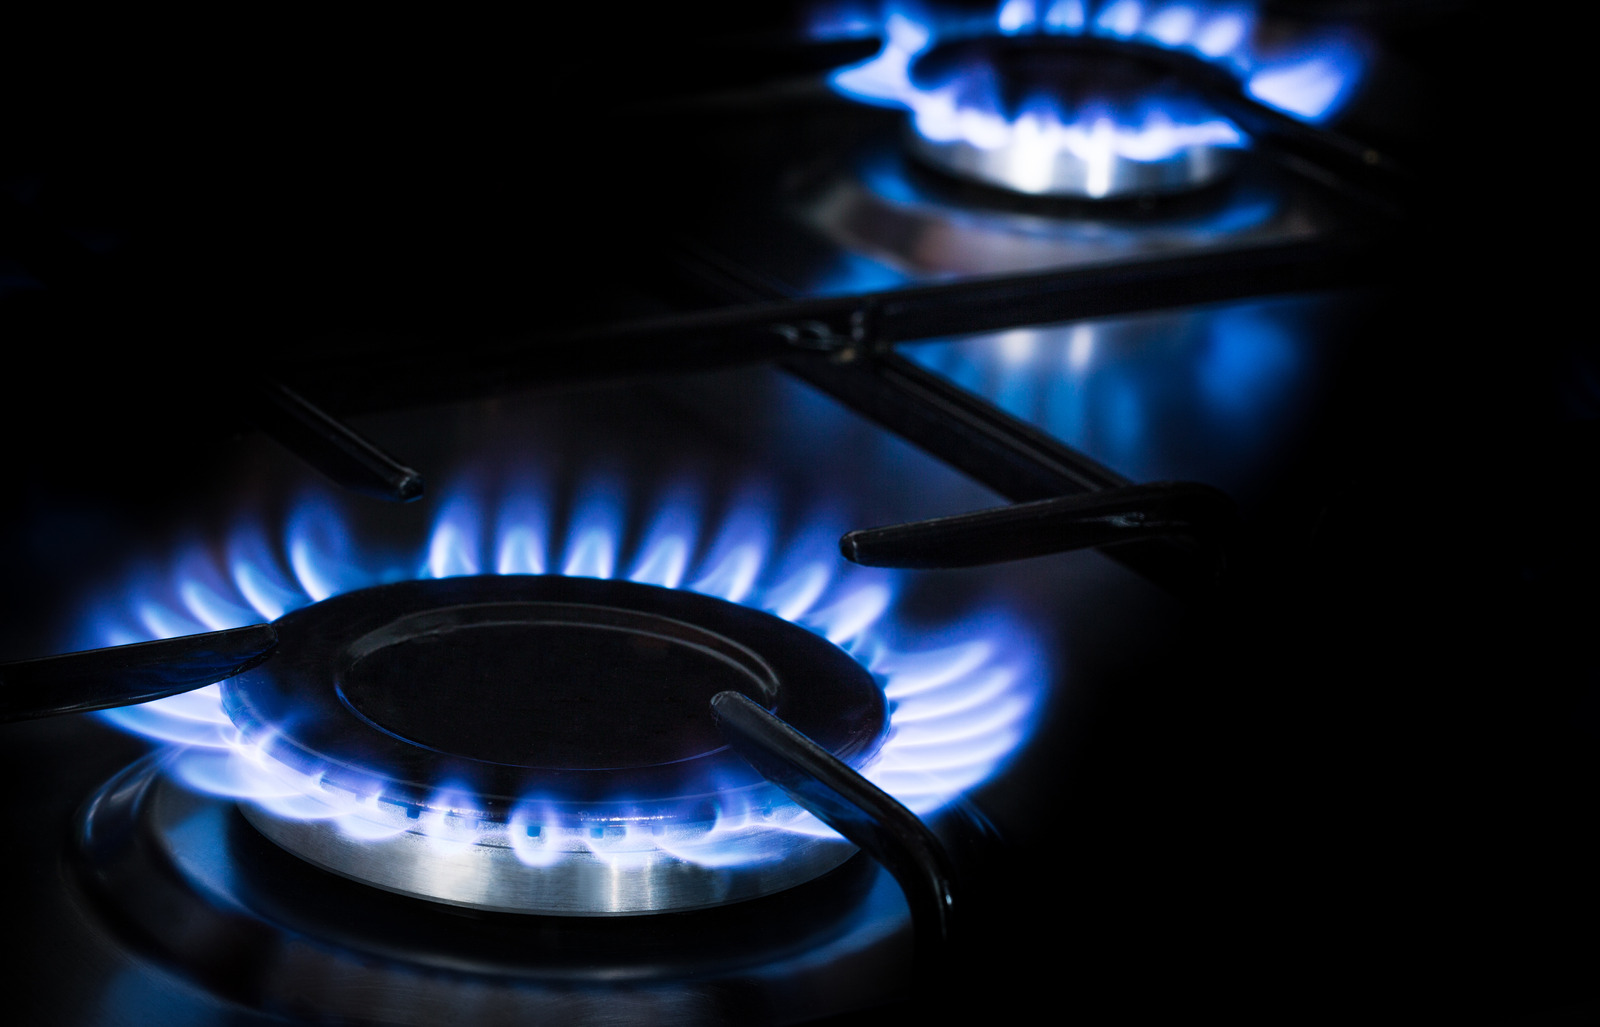 Energy prices increase due to lockdown